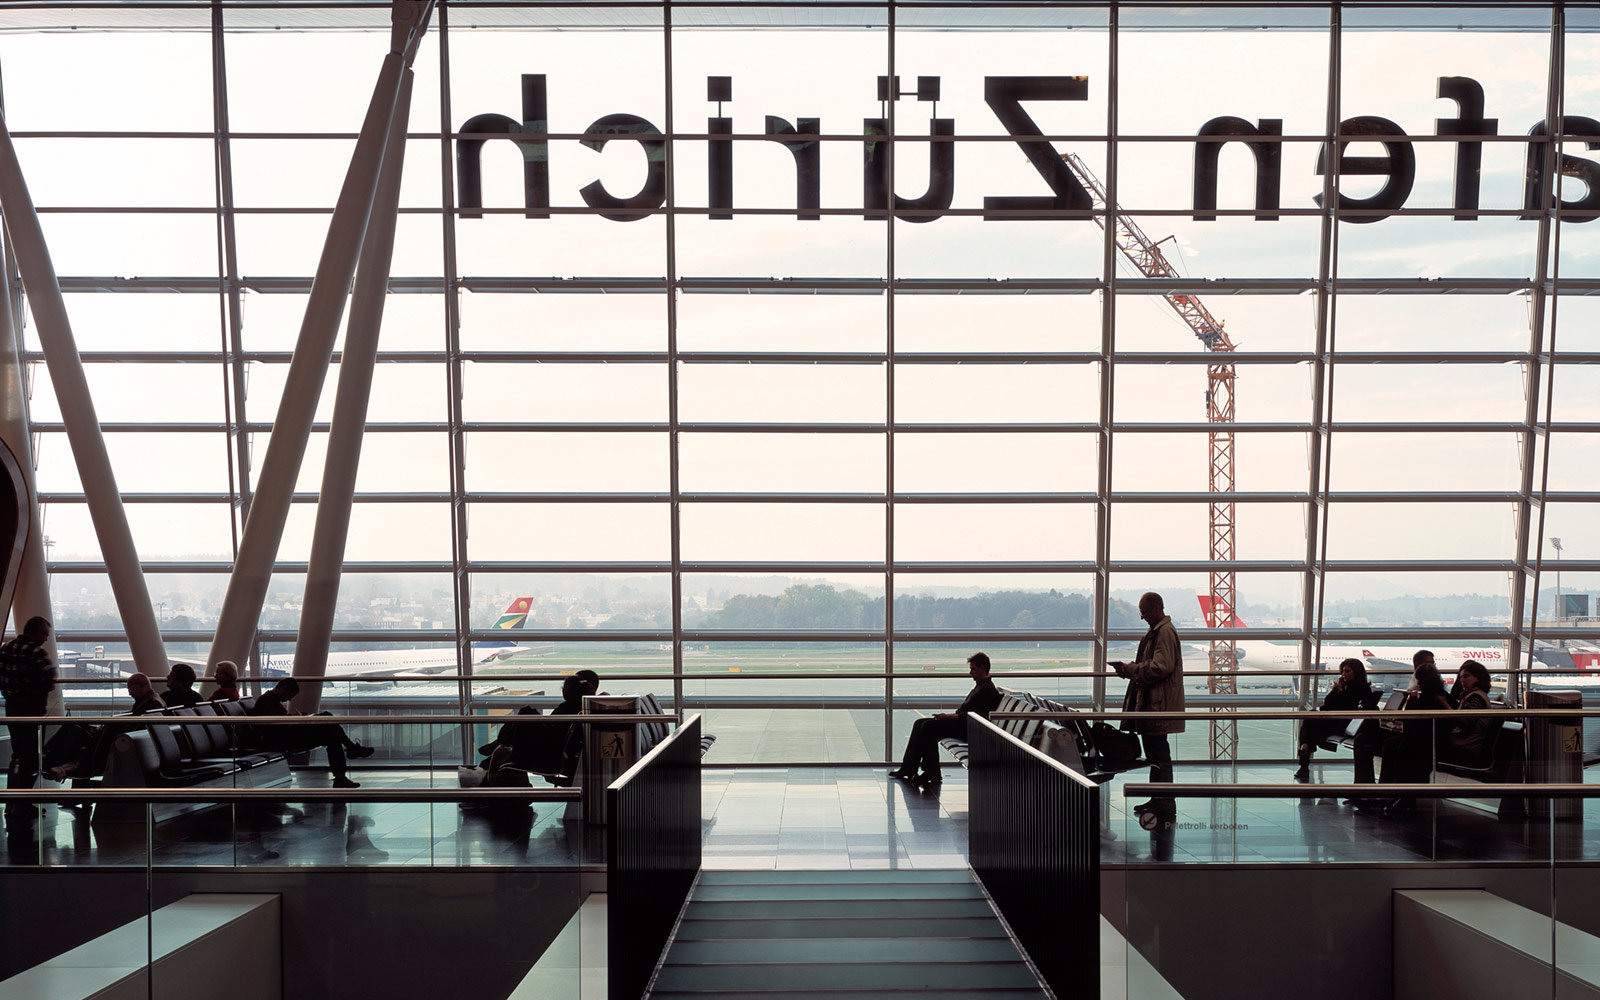 Zurich Airport, Zurich, Switzerland